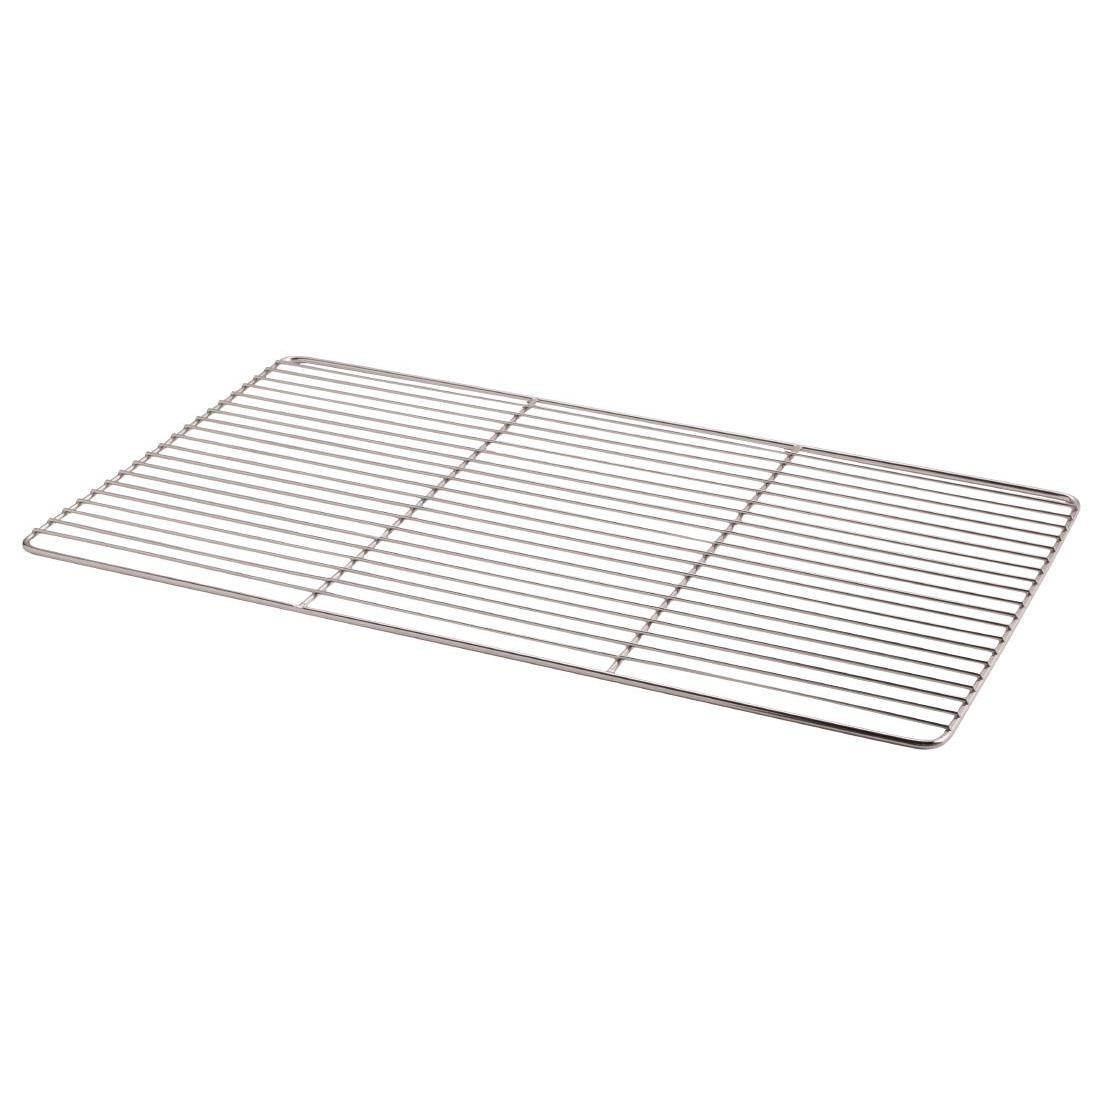 Vogue Cooling Rack 330 x 530mm - M929